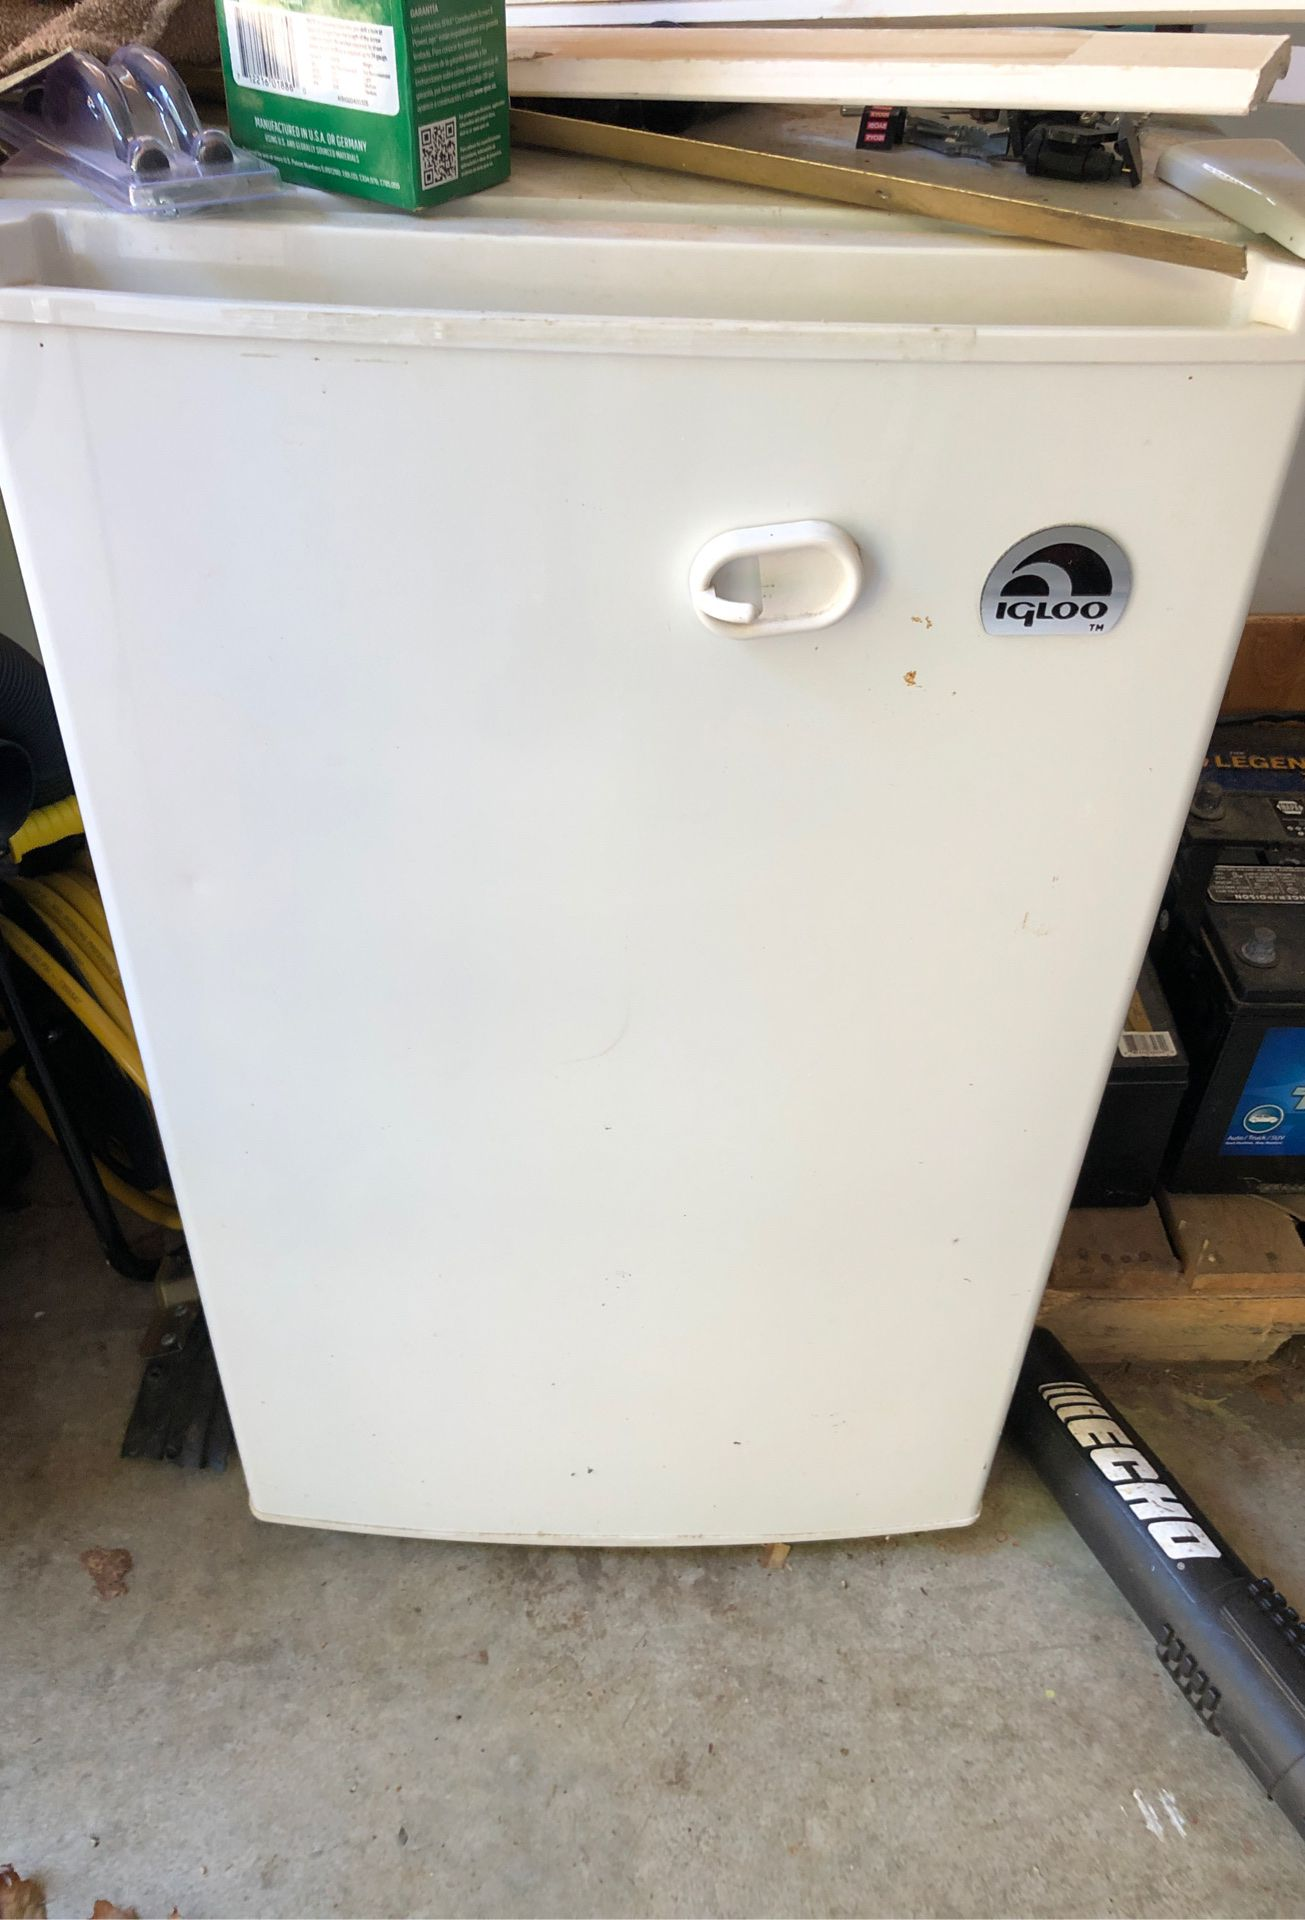 New mini fridge. Bought it for my RV and it didn't fit. Never used it and just sitting in my garage.